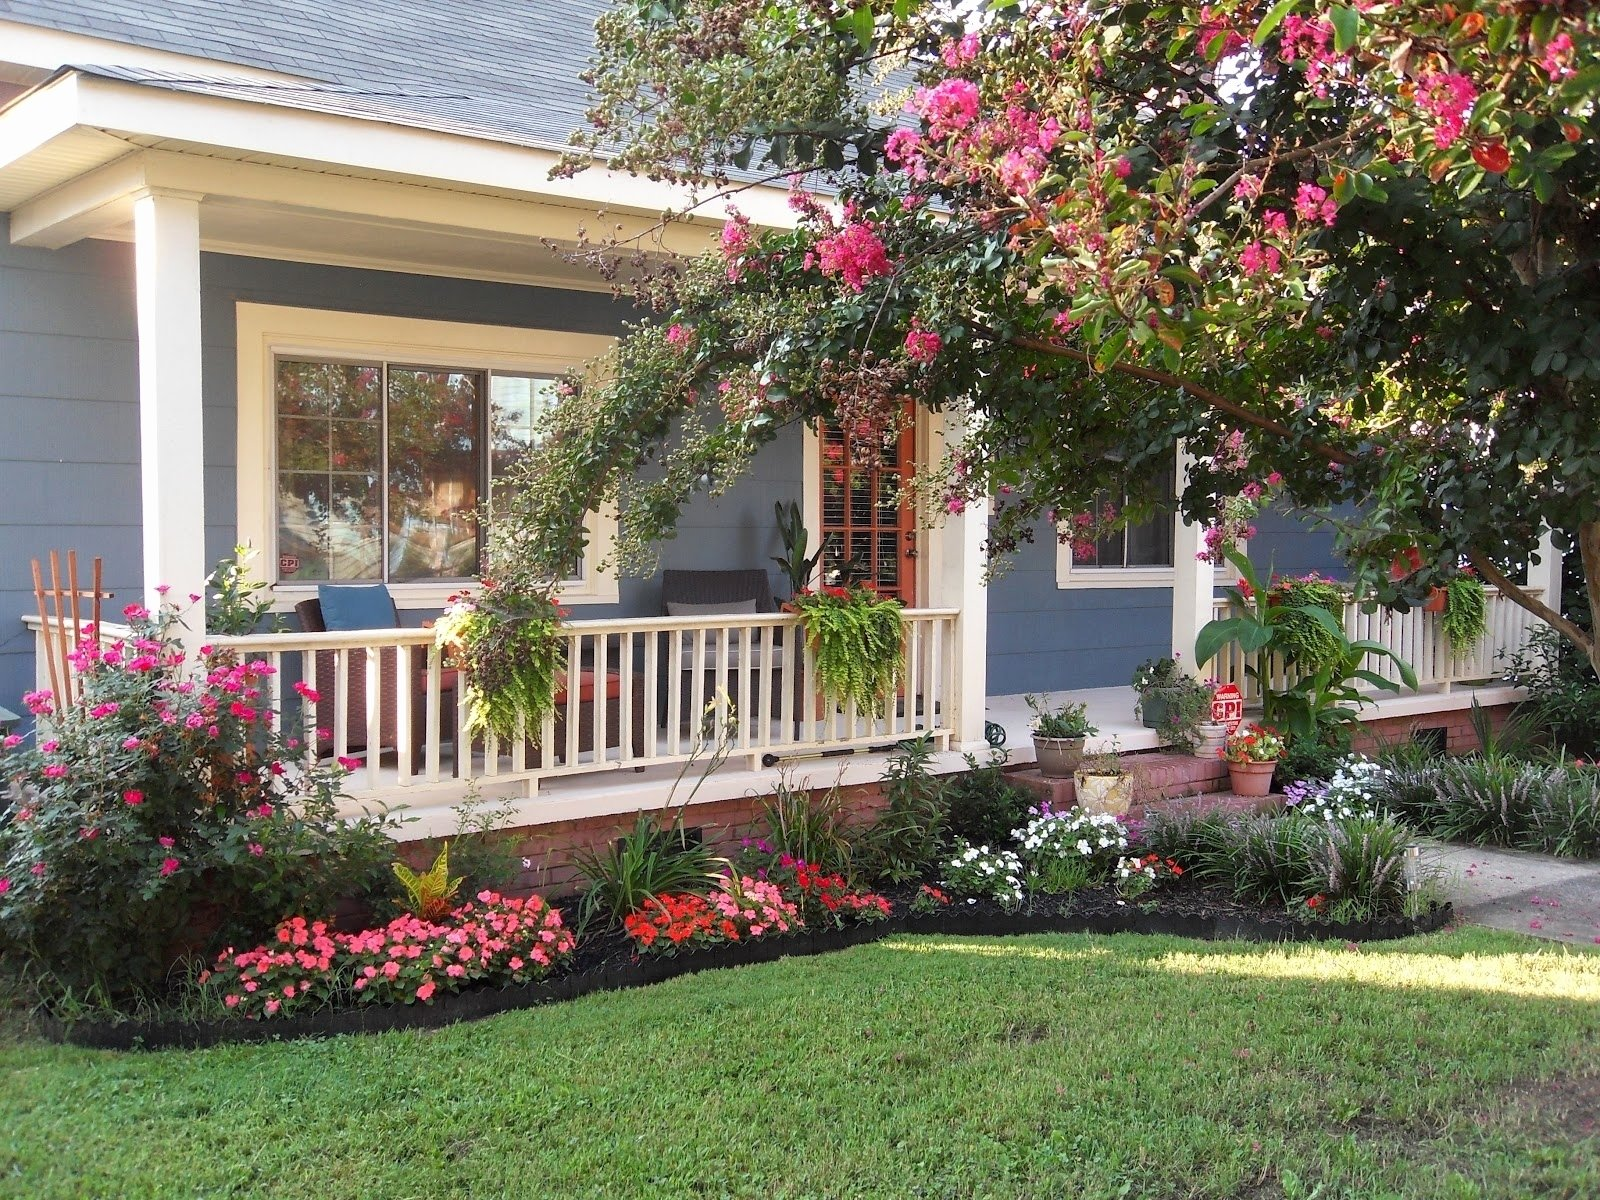 10 Stylish Simple Front Yard Landscaping Ideas On A Budget approved simple front yard landscaping ideas picture 37 of 46 2